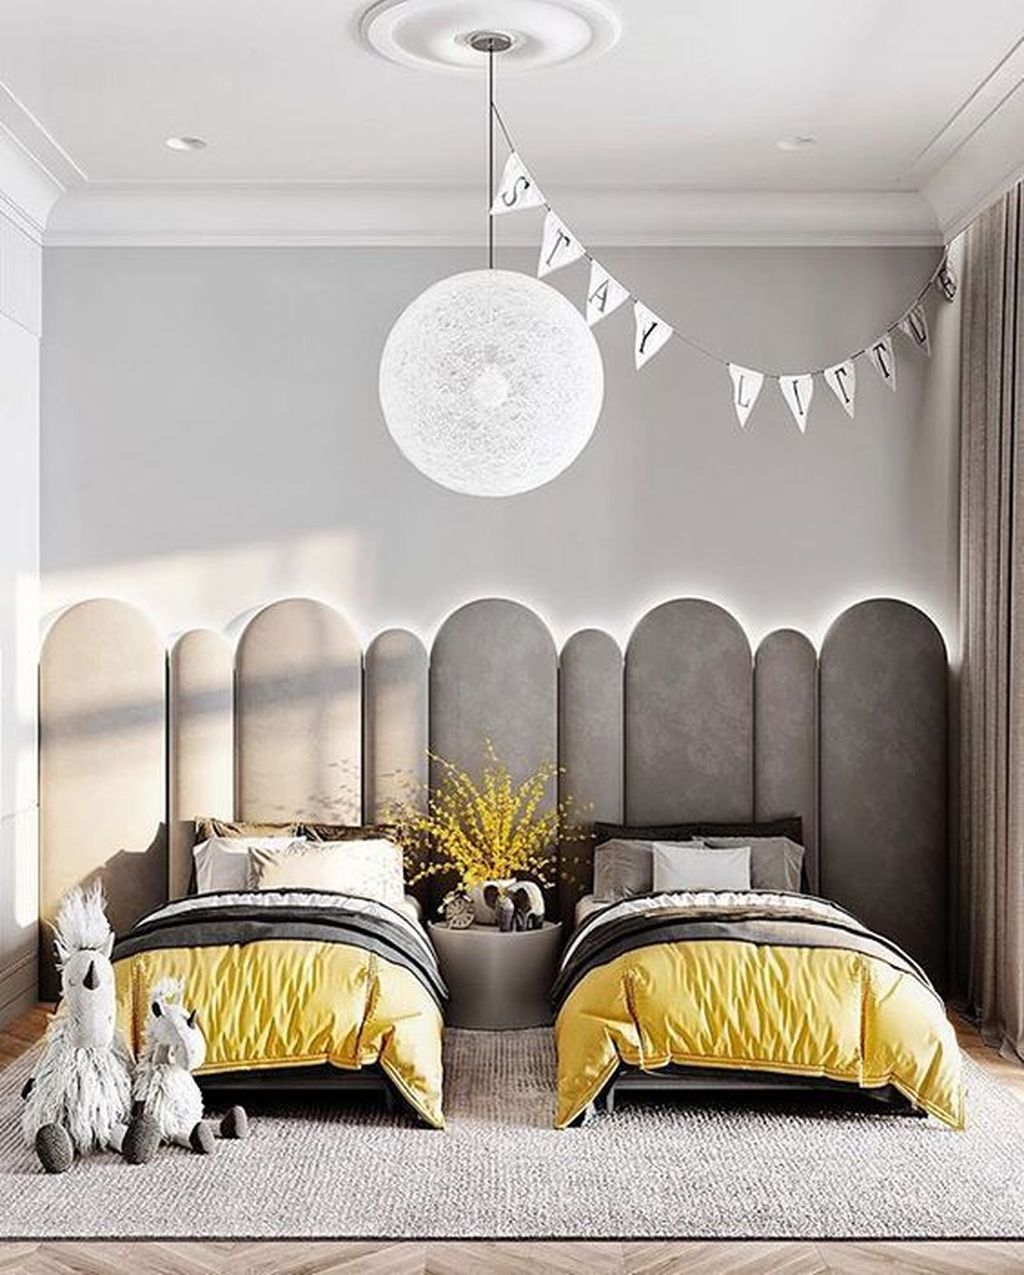 Charming Yellow Interior Design Ideas Best For Summer 27